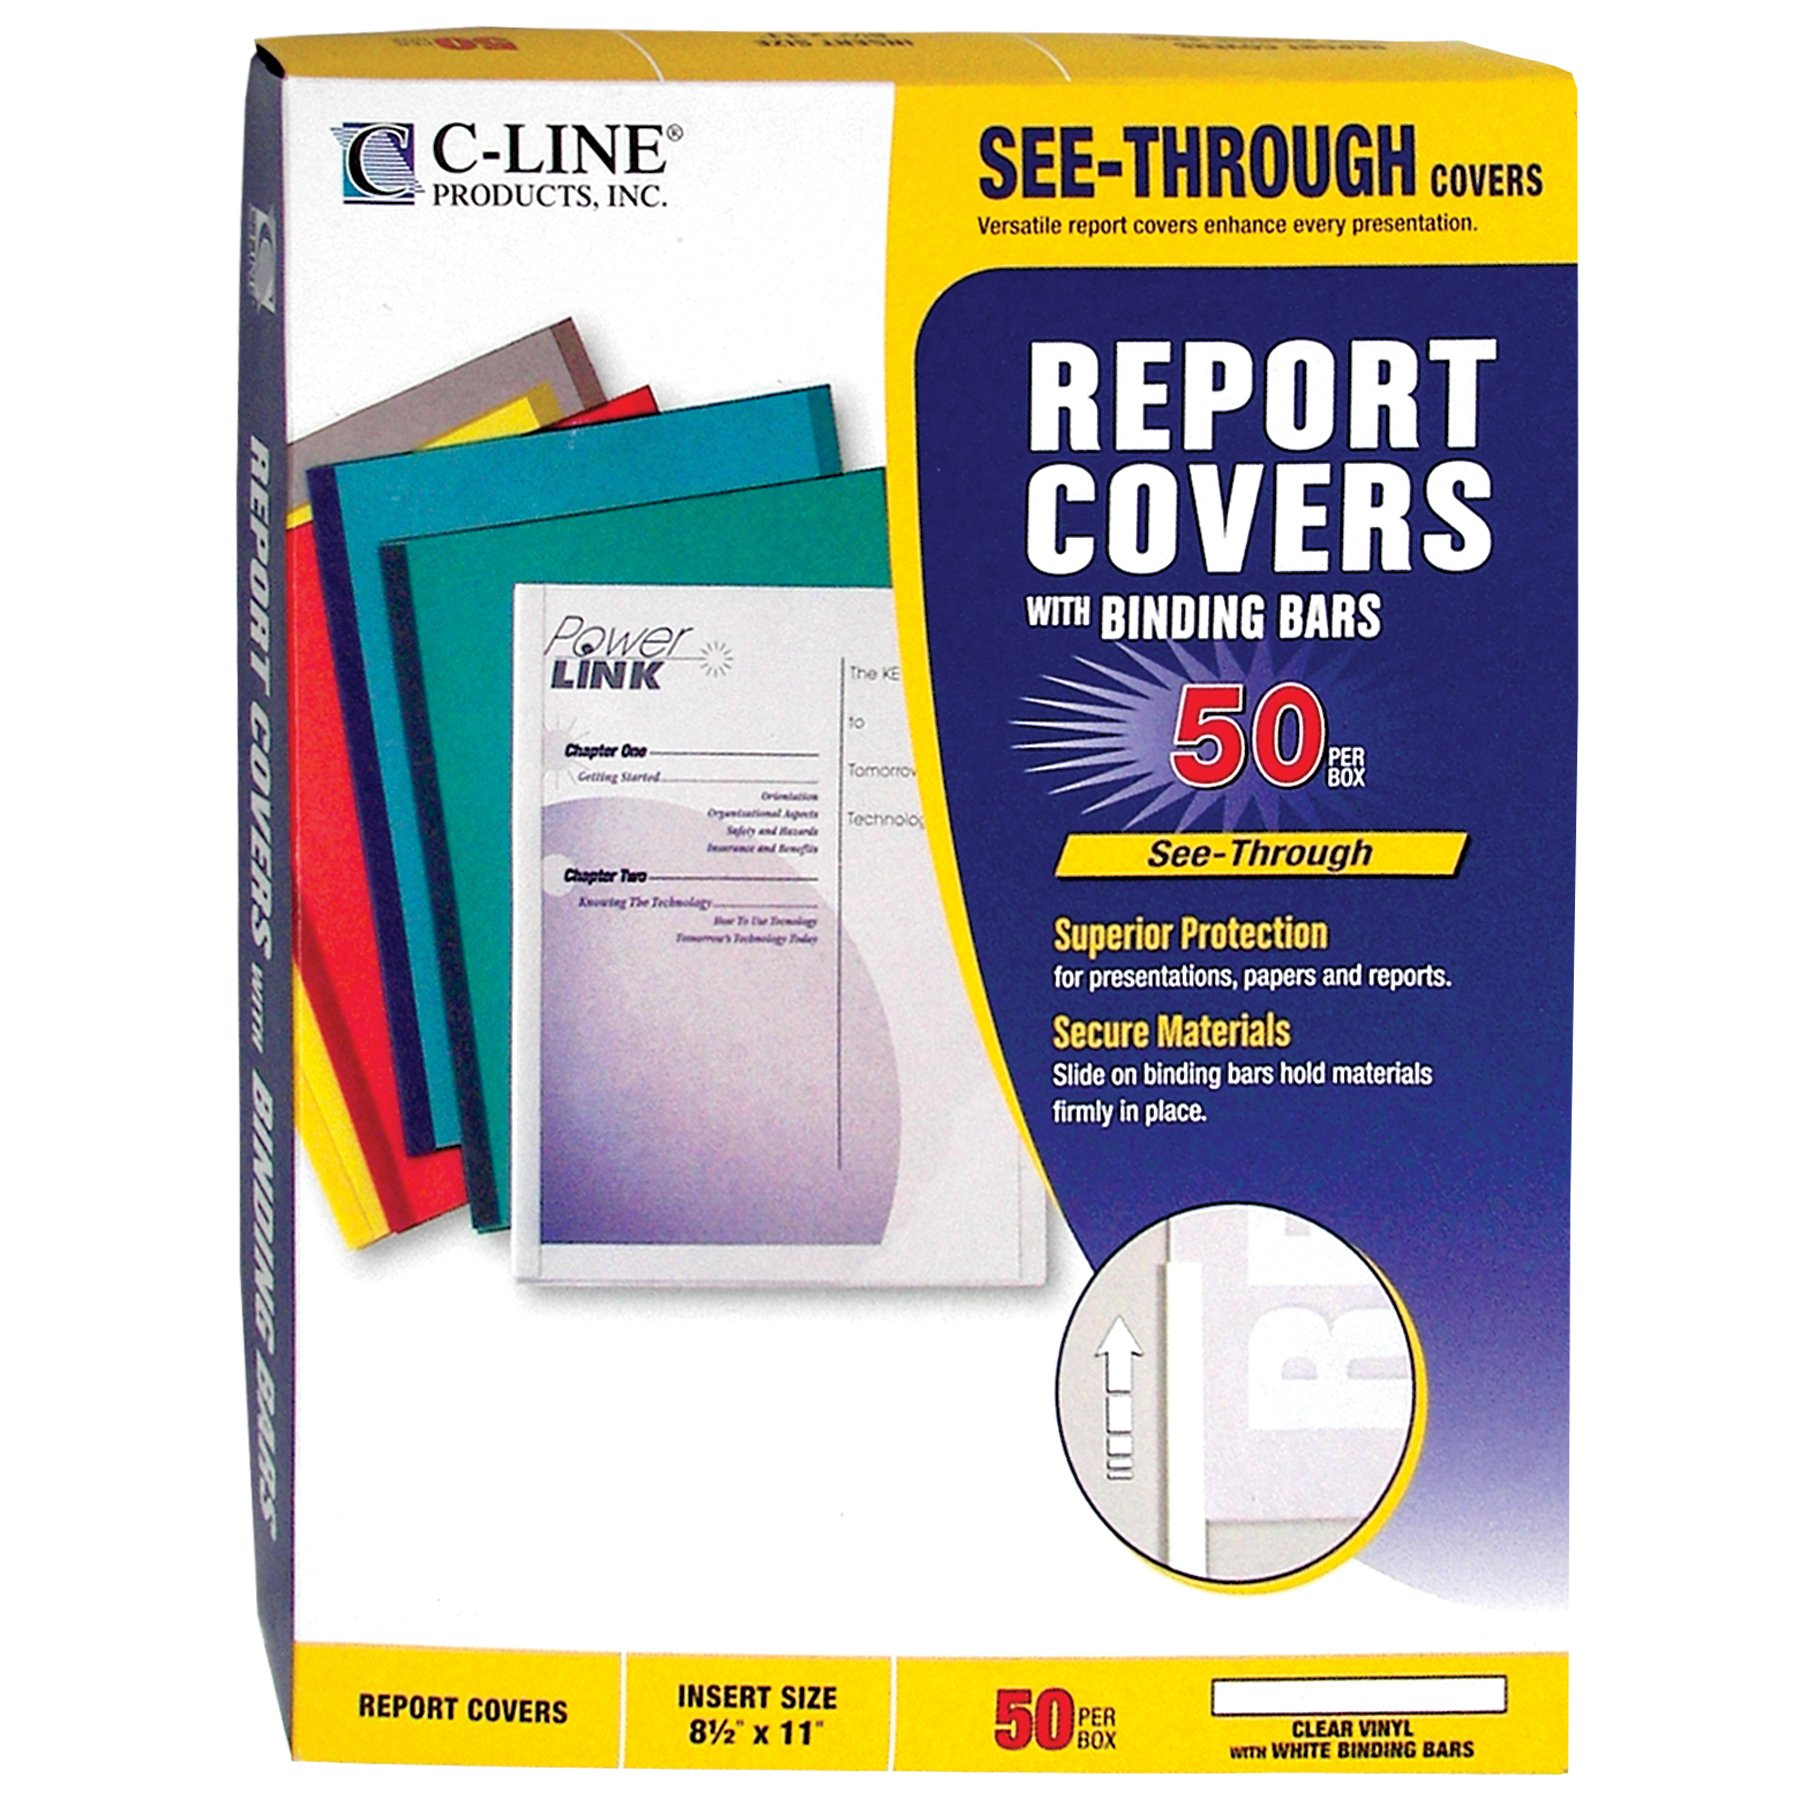 C-Line Report Covers with Binding Bars, Clear Vinyl, White Bars, 8.5 x 11 Inches, 50 per Box (32557) by C-Line (Image #5)